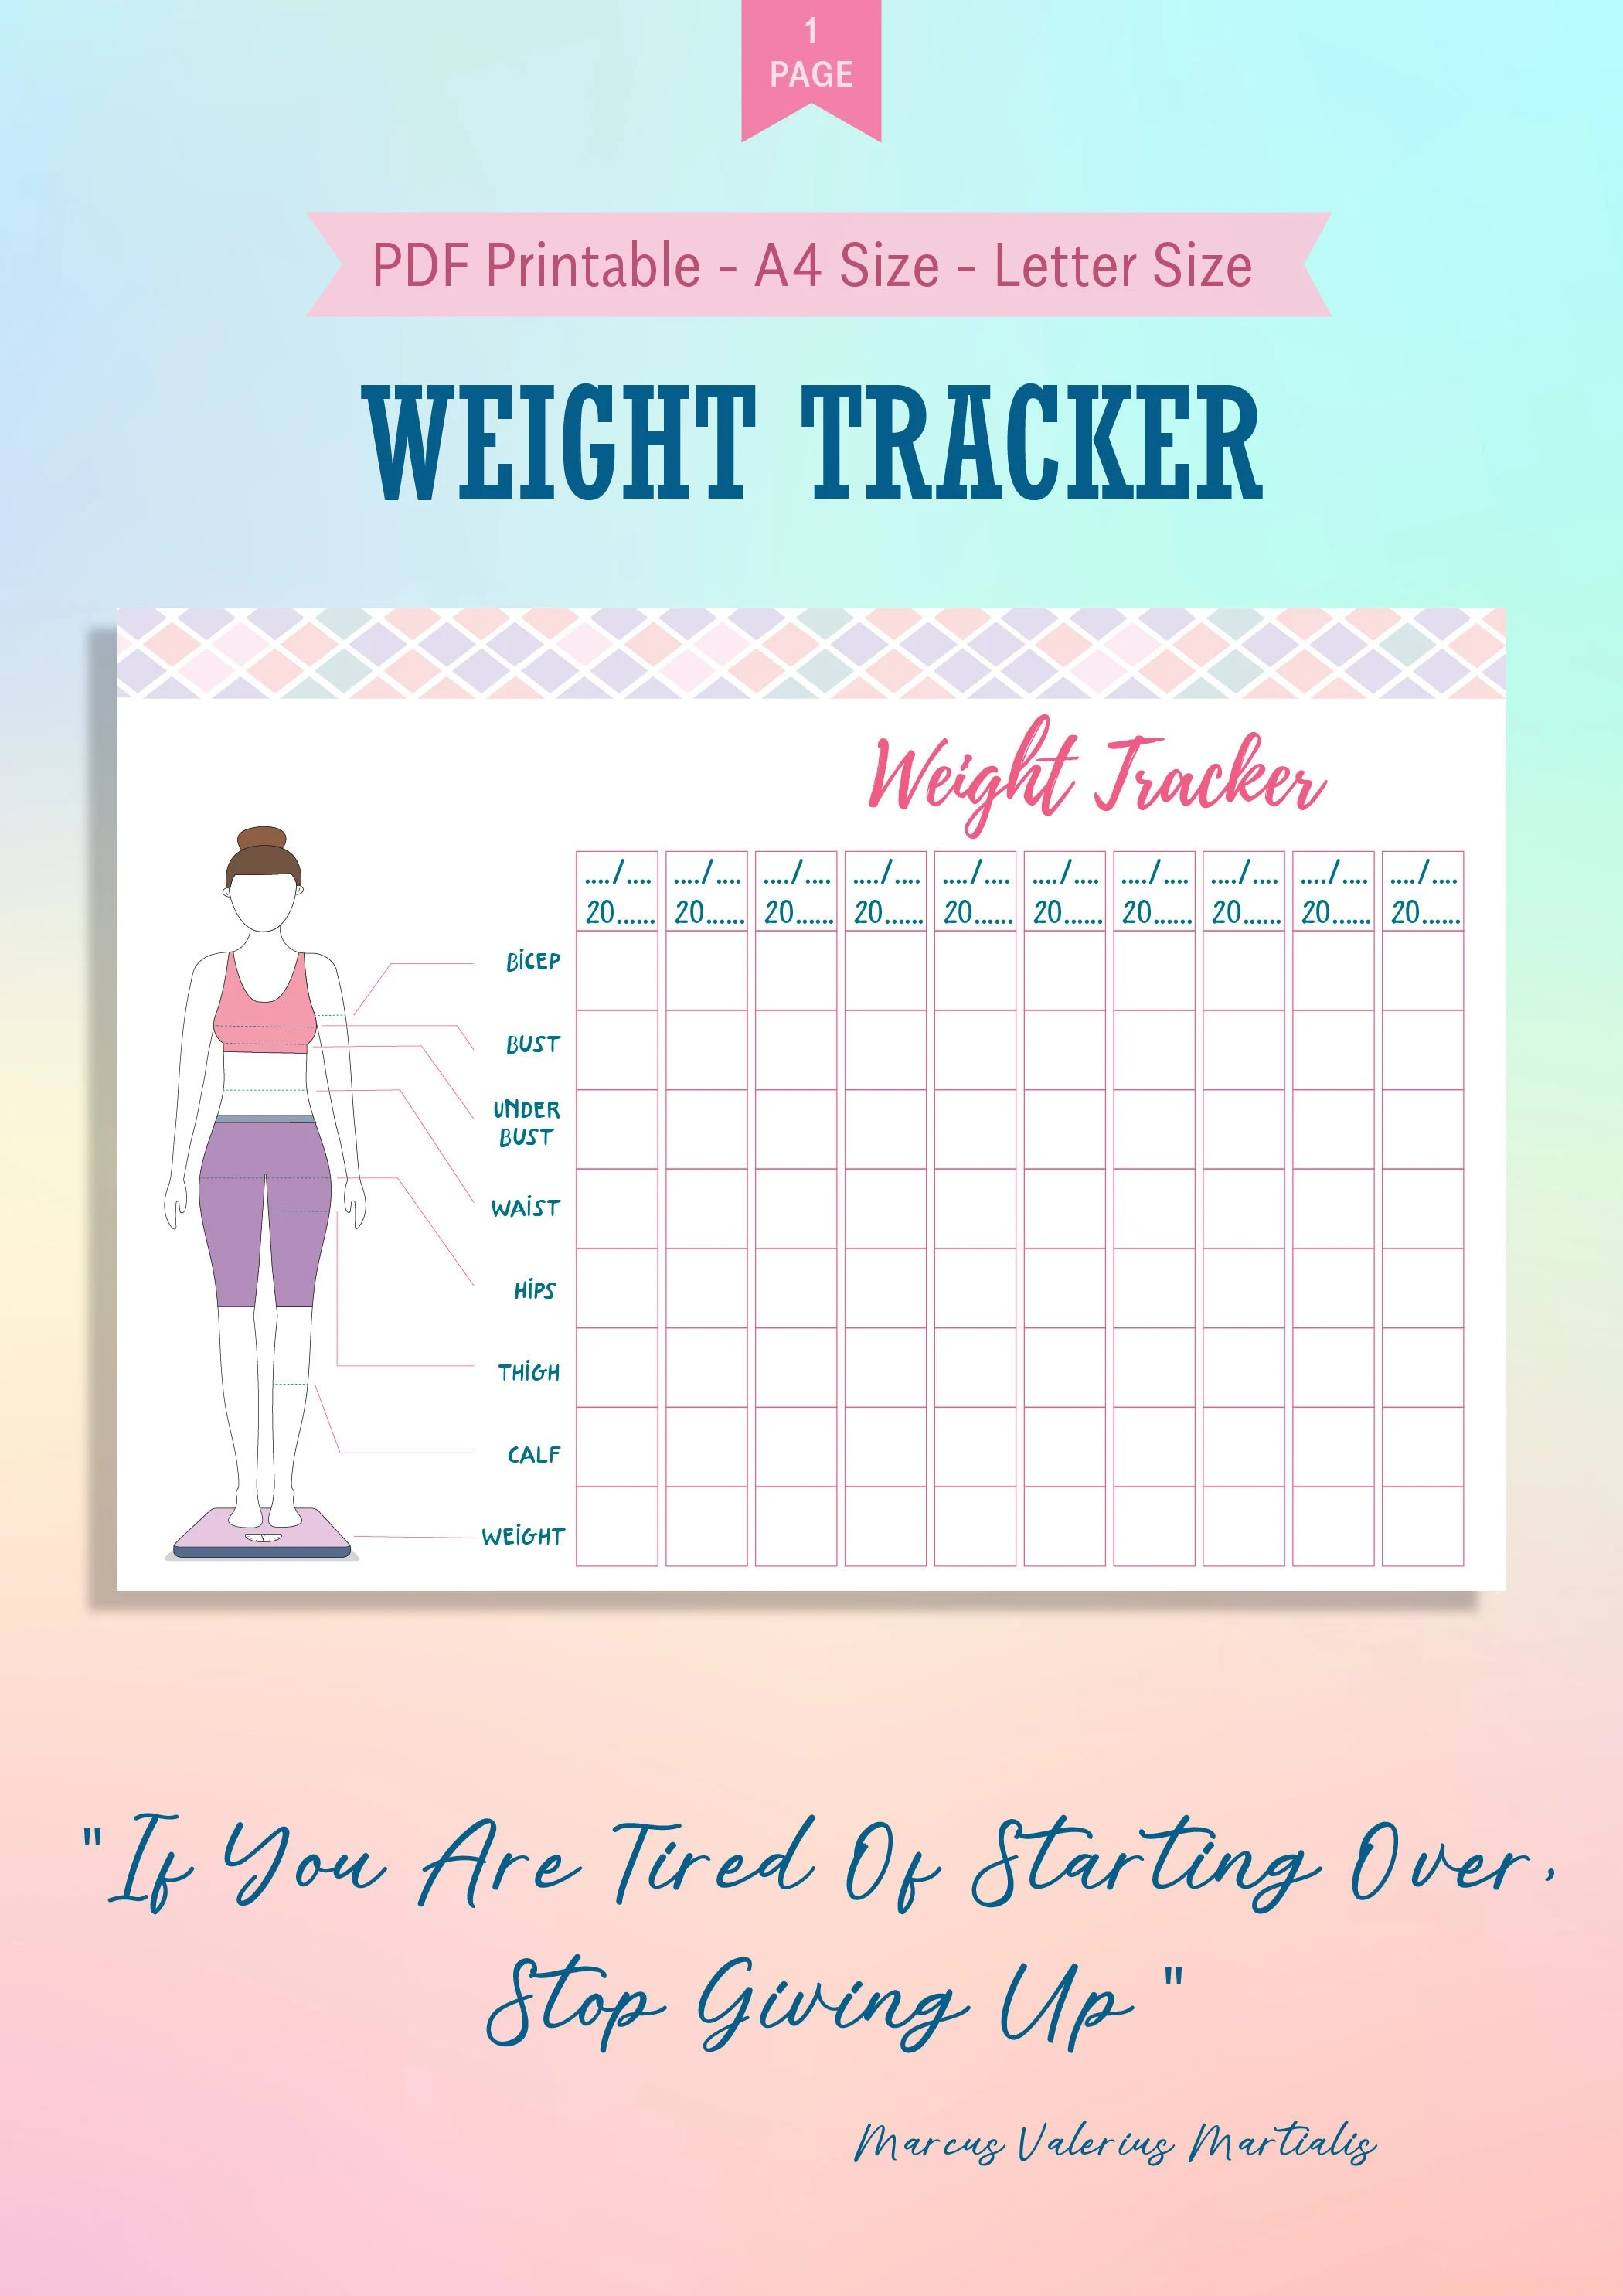 Weight Loss Tracker Printable Weight Loss Body Measurement